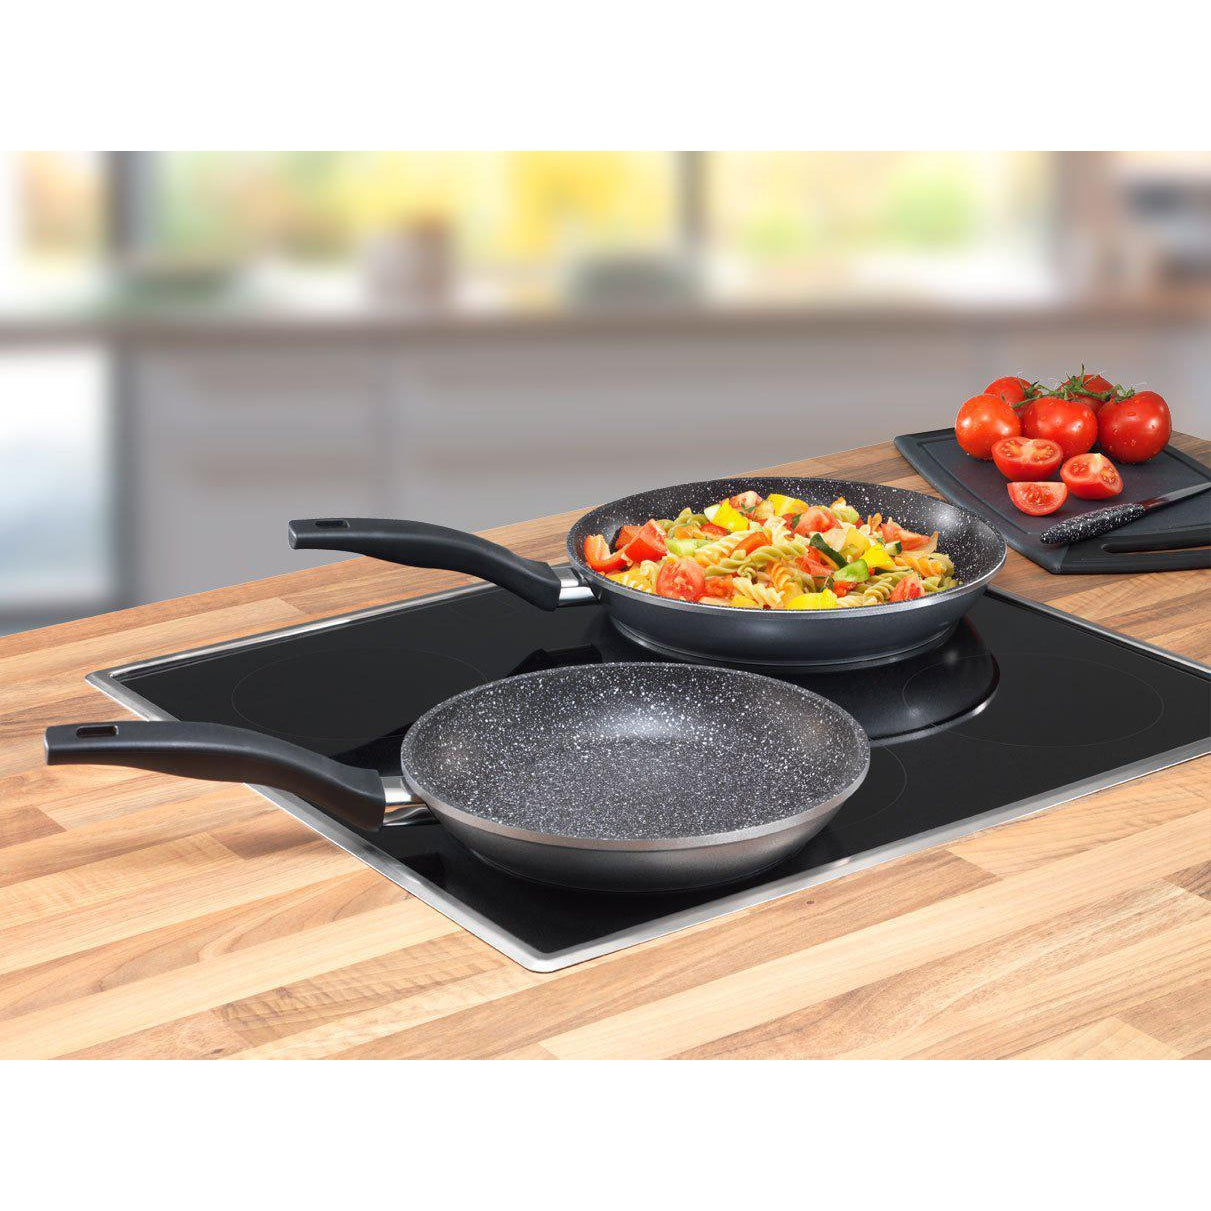 Stoneline® 2 Piece Frying Pan Set - portable heater